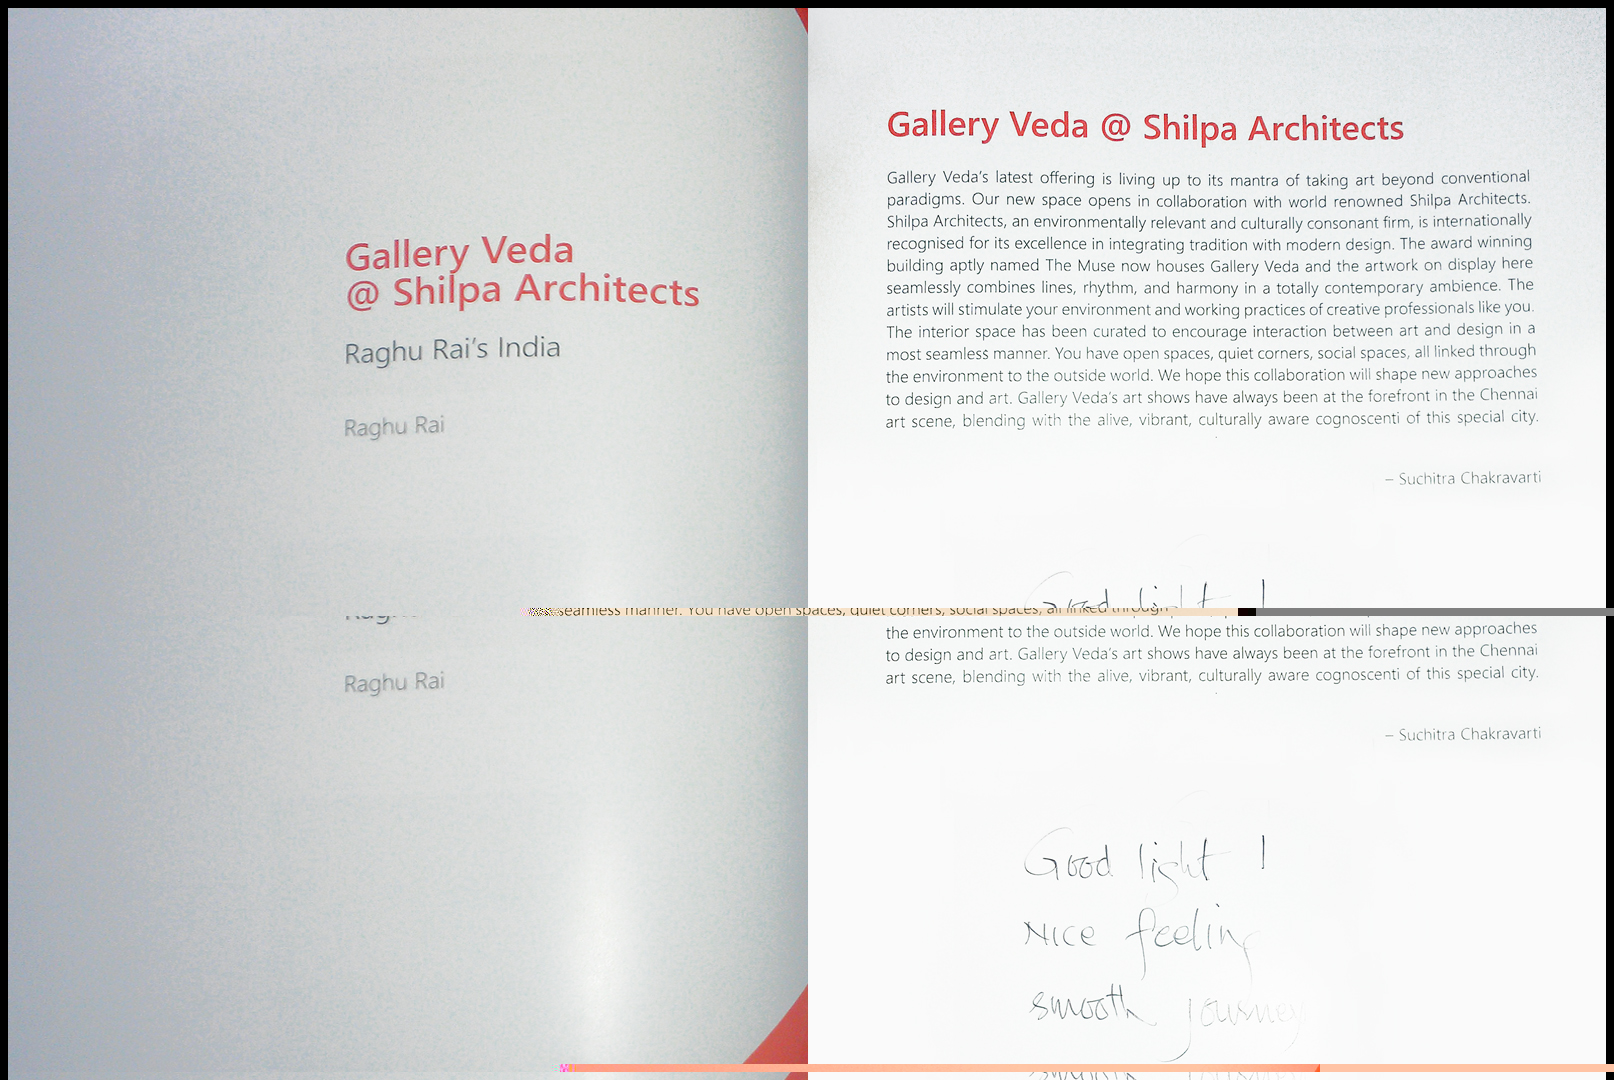 Gallery Veda at Shilpa Architects with Raghu Rai